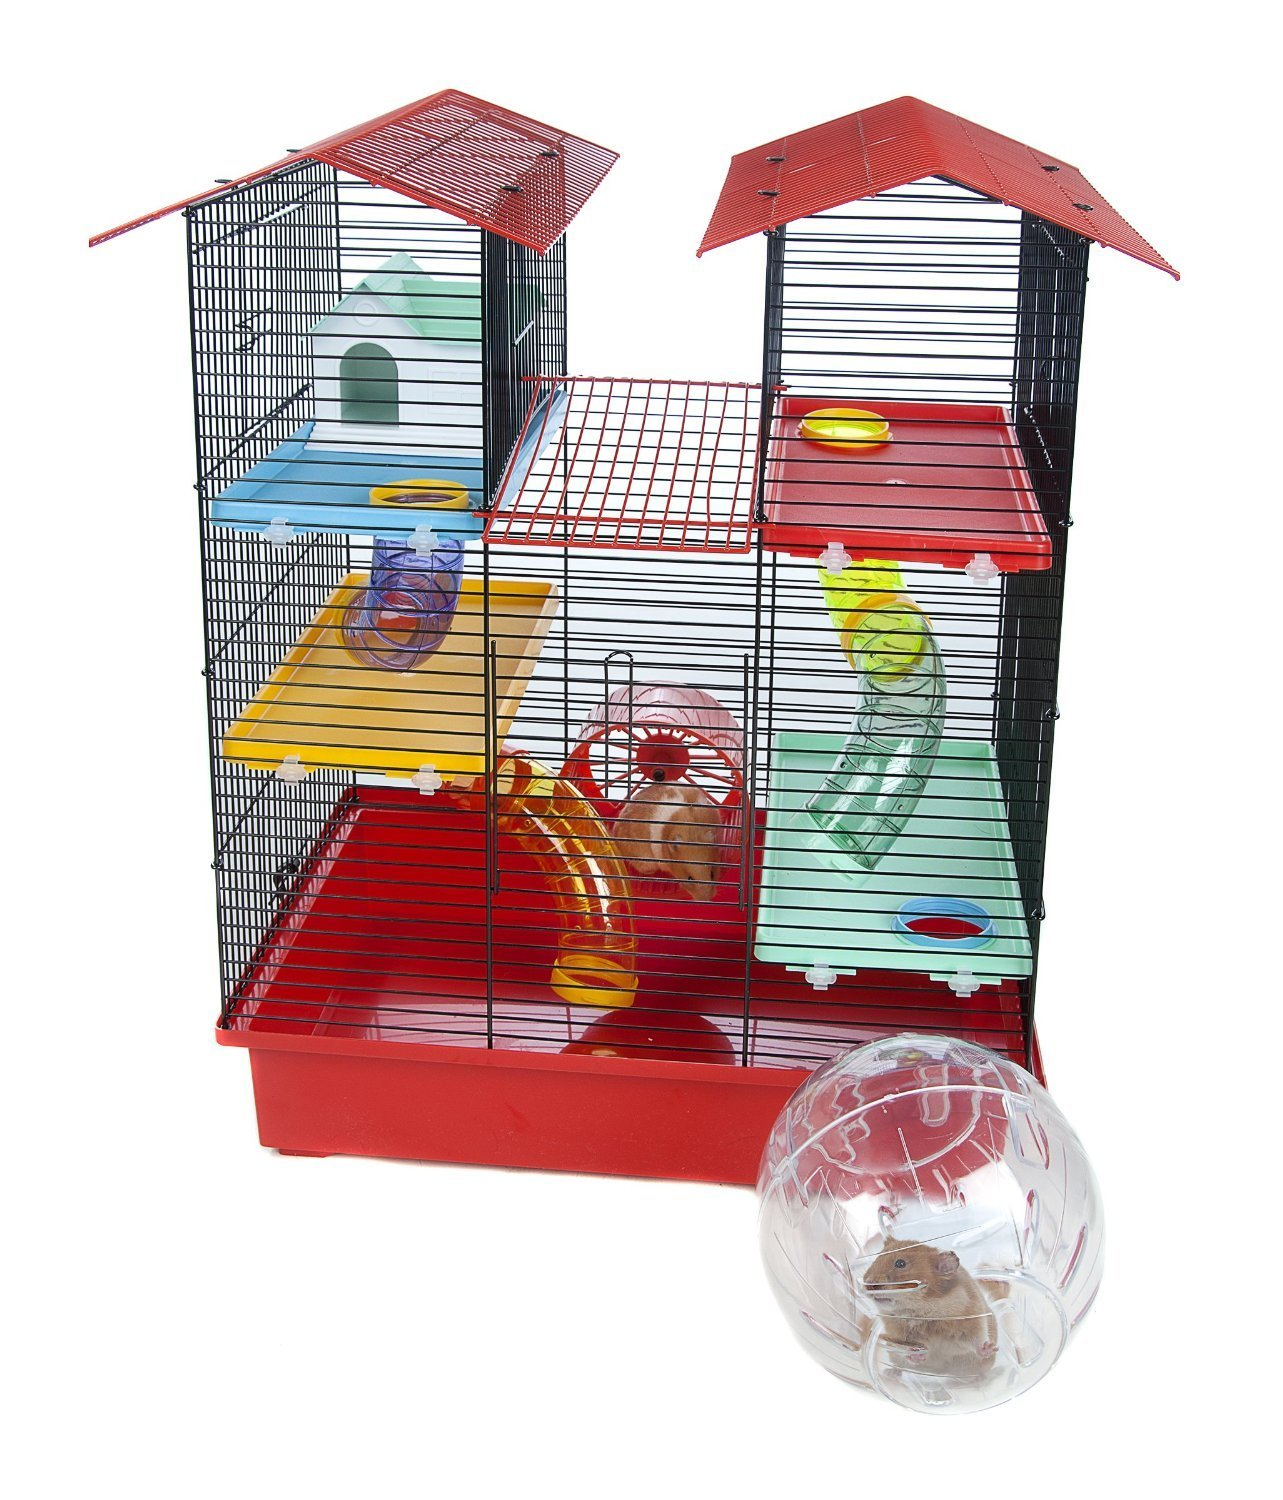 Westminster Hamster Cage Free Hamster Ball With Every Cage